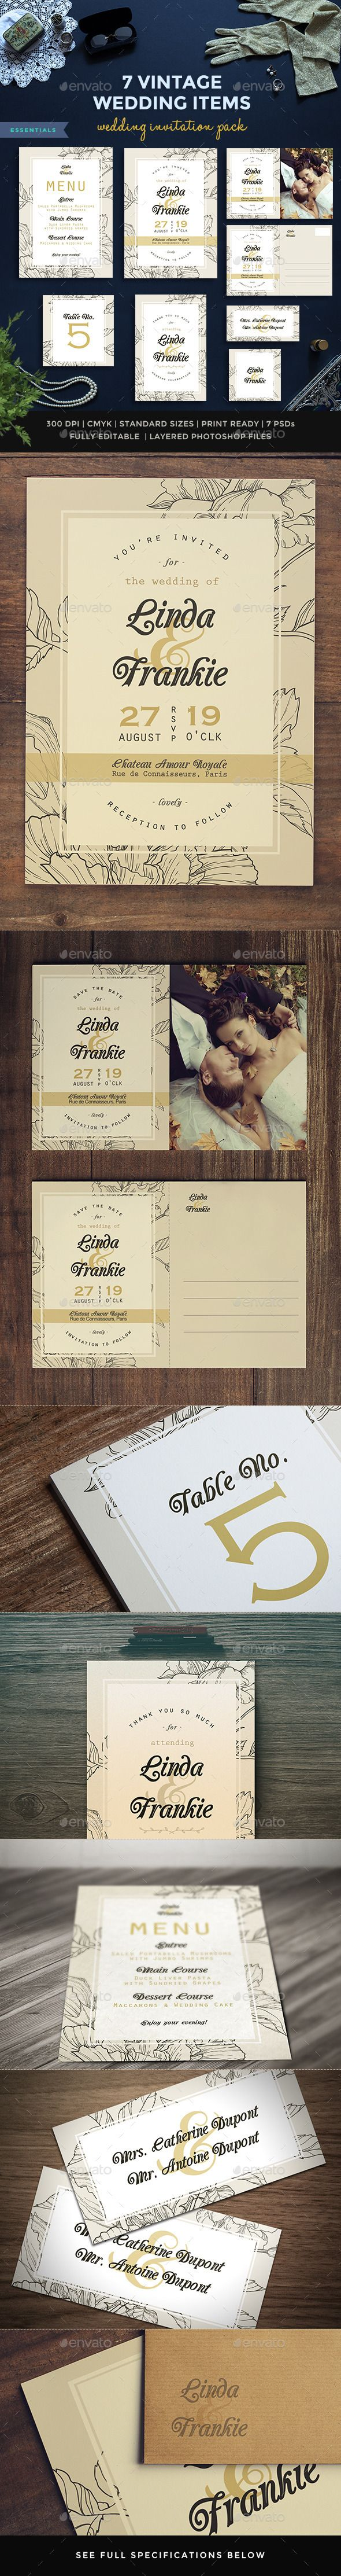 templates for wedding card design%0A   Vintage Items  Wedding Pack II  Invites WeddingWedding Invitation  TemplatesA